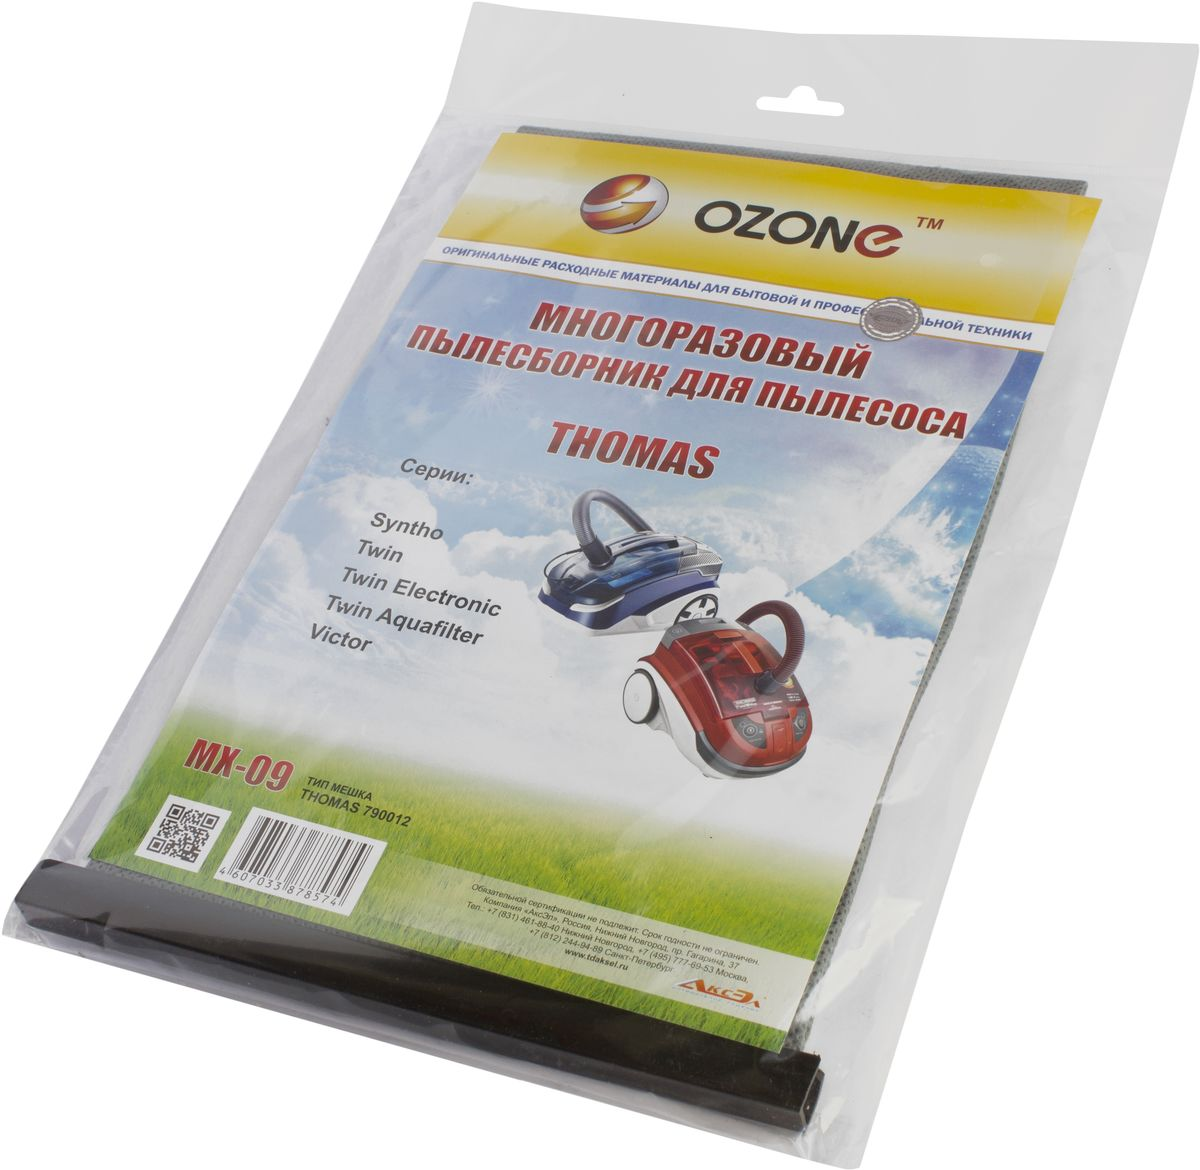 Ozone MX-09 пылесборник для пылесосов Thomas free shipping 100pcs lot me7660cs1g me7660 microne sop8 ic